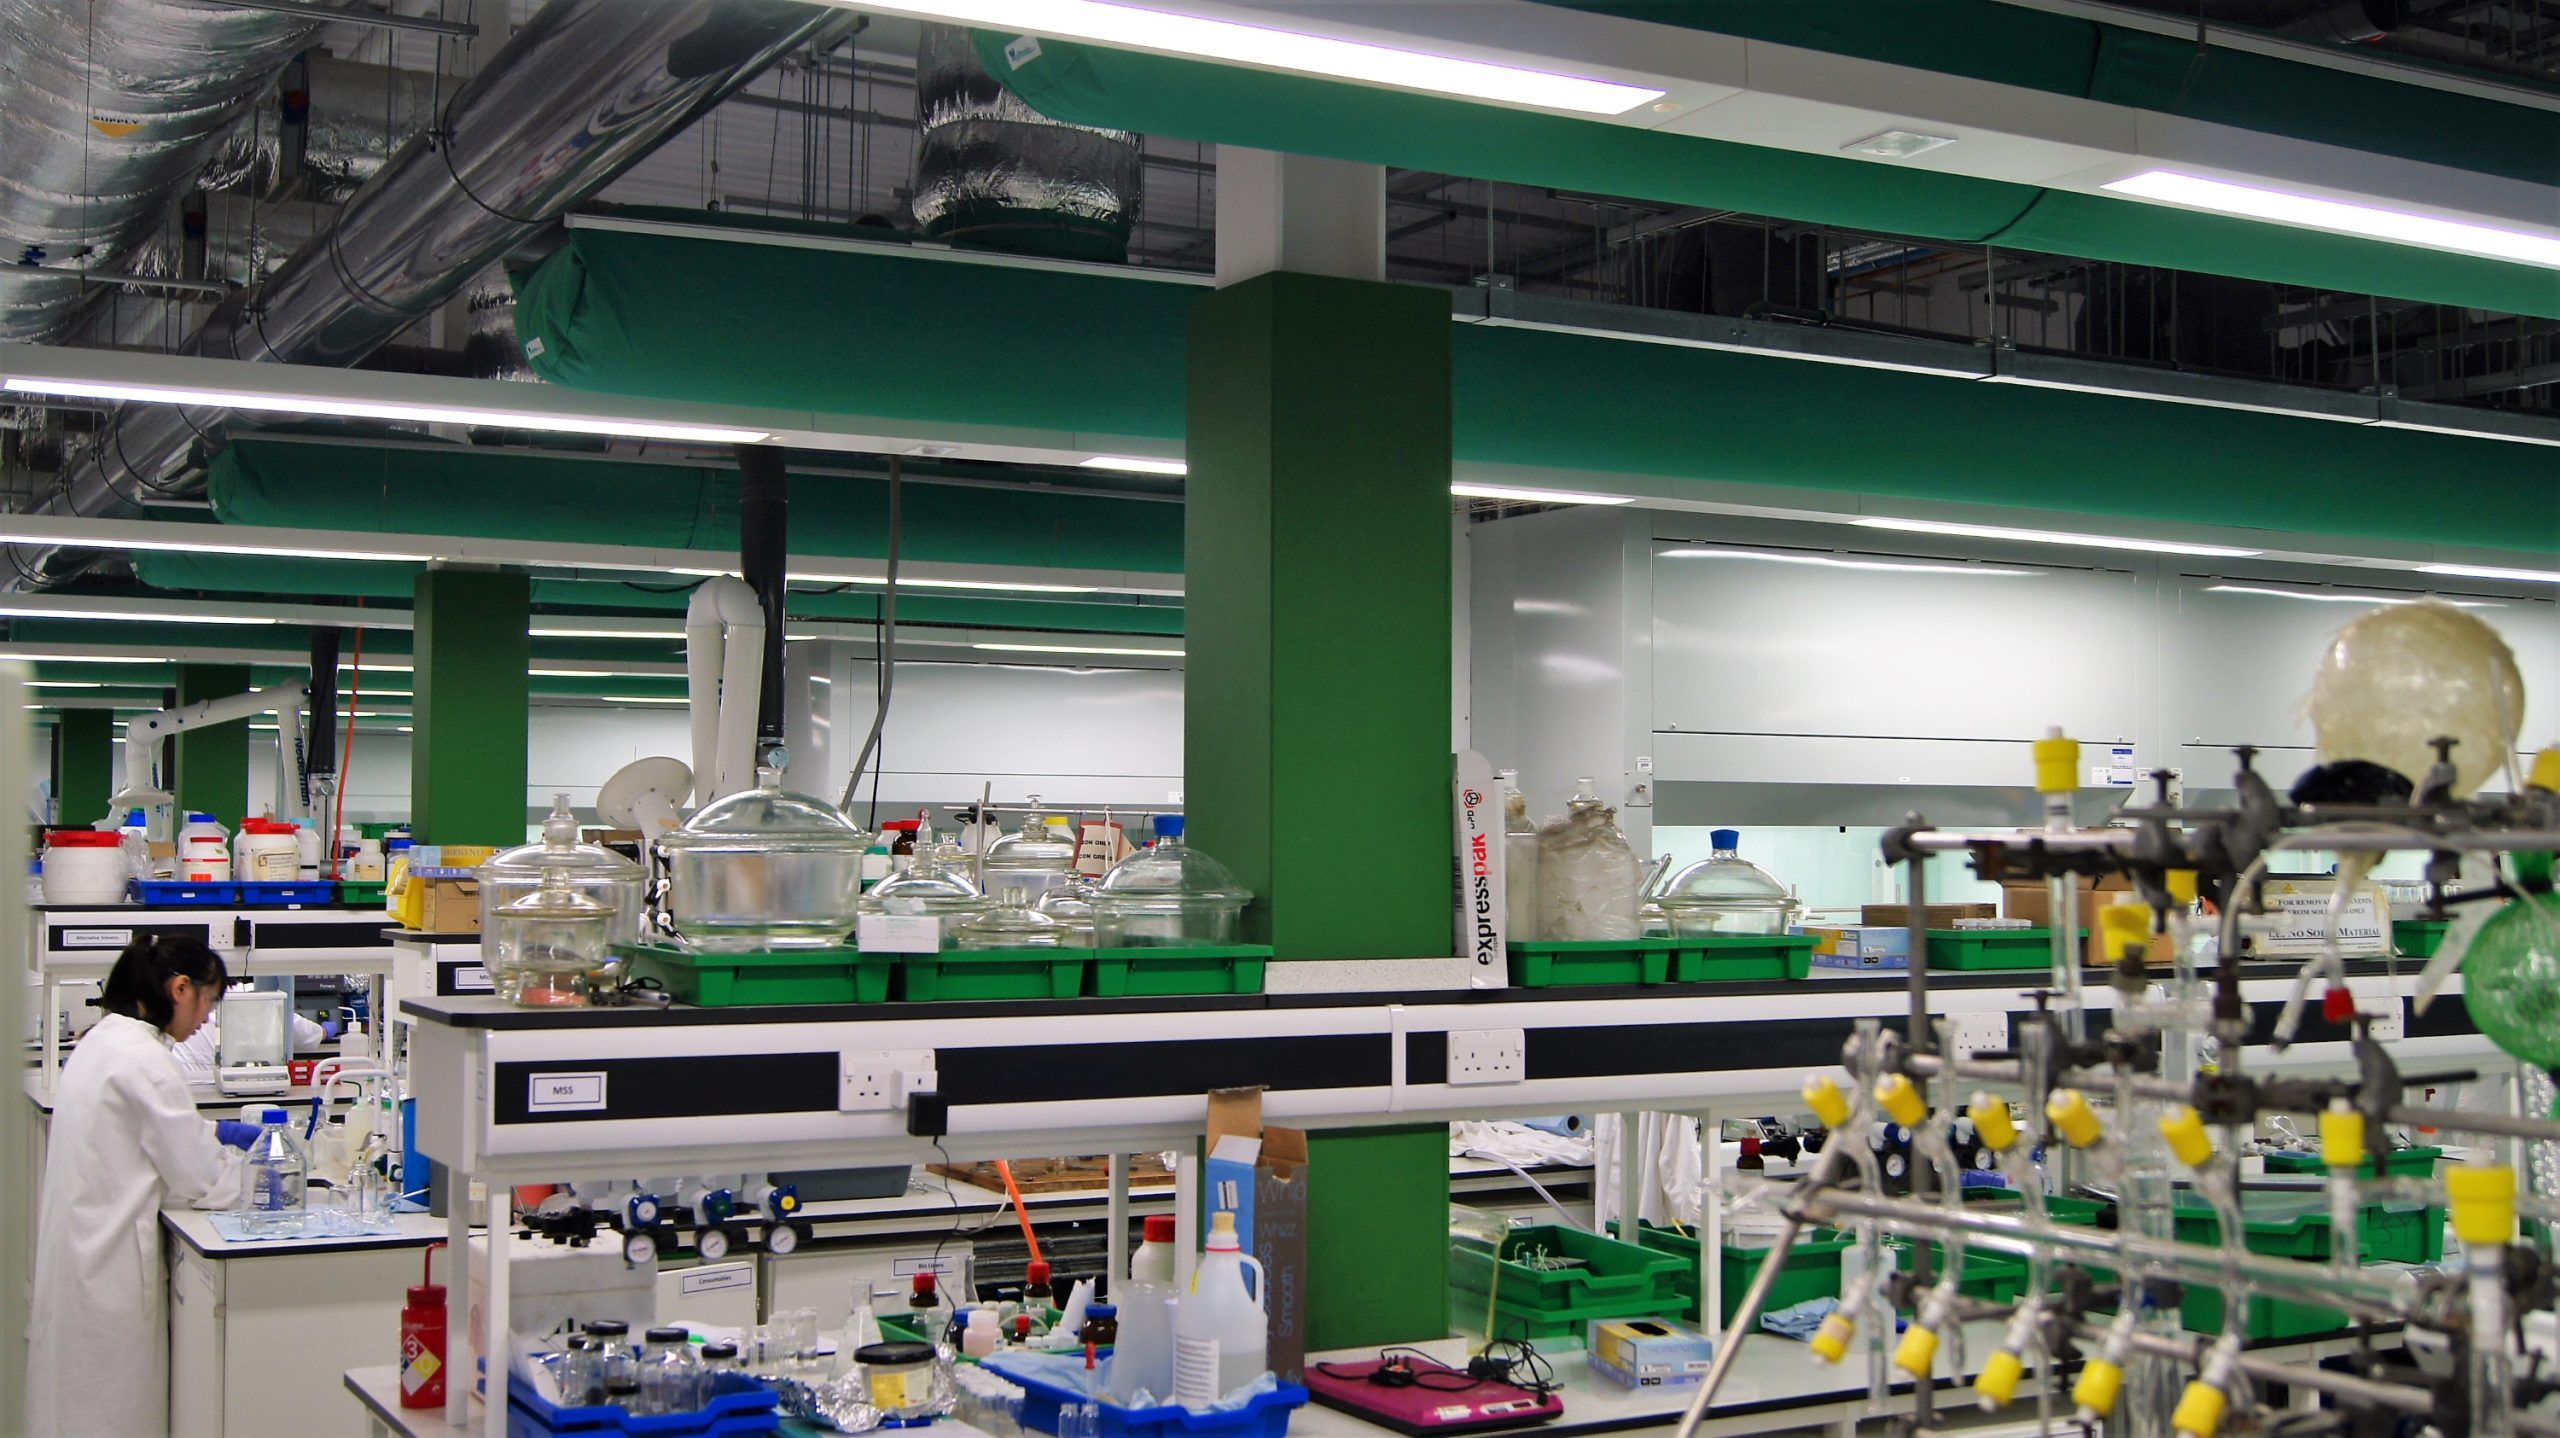 Green fabric ducts in a University of York laboratory